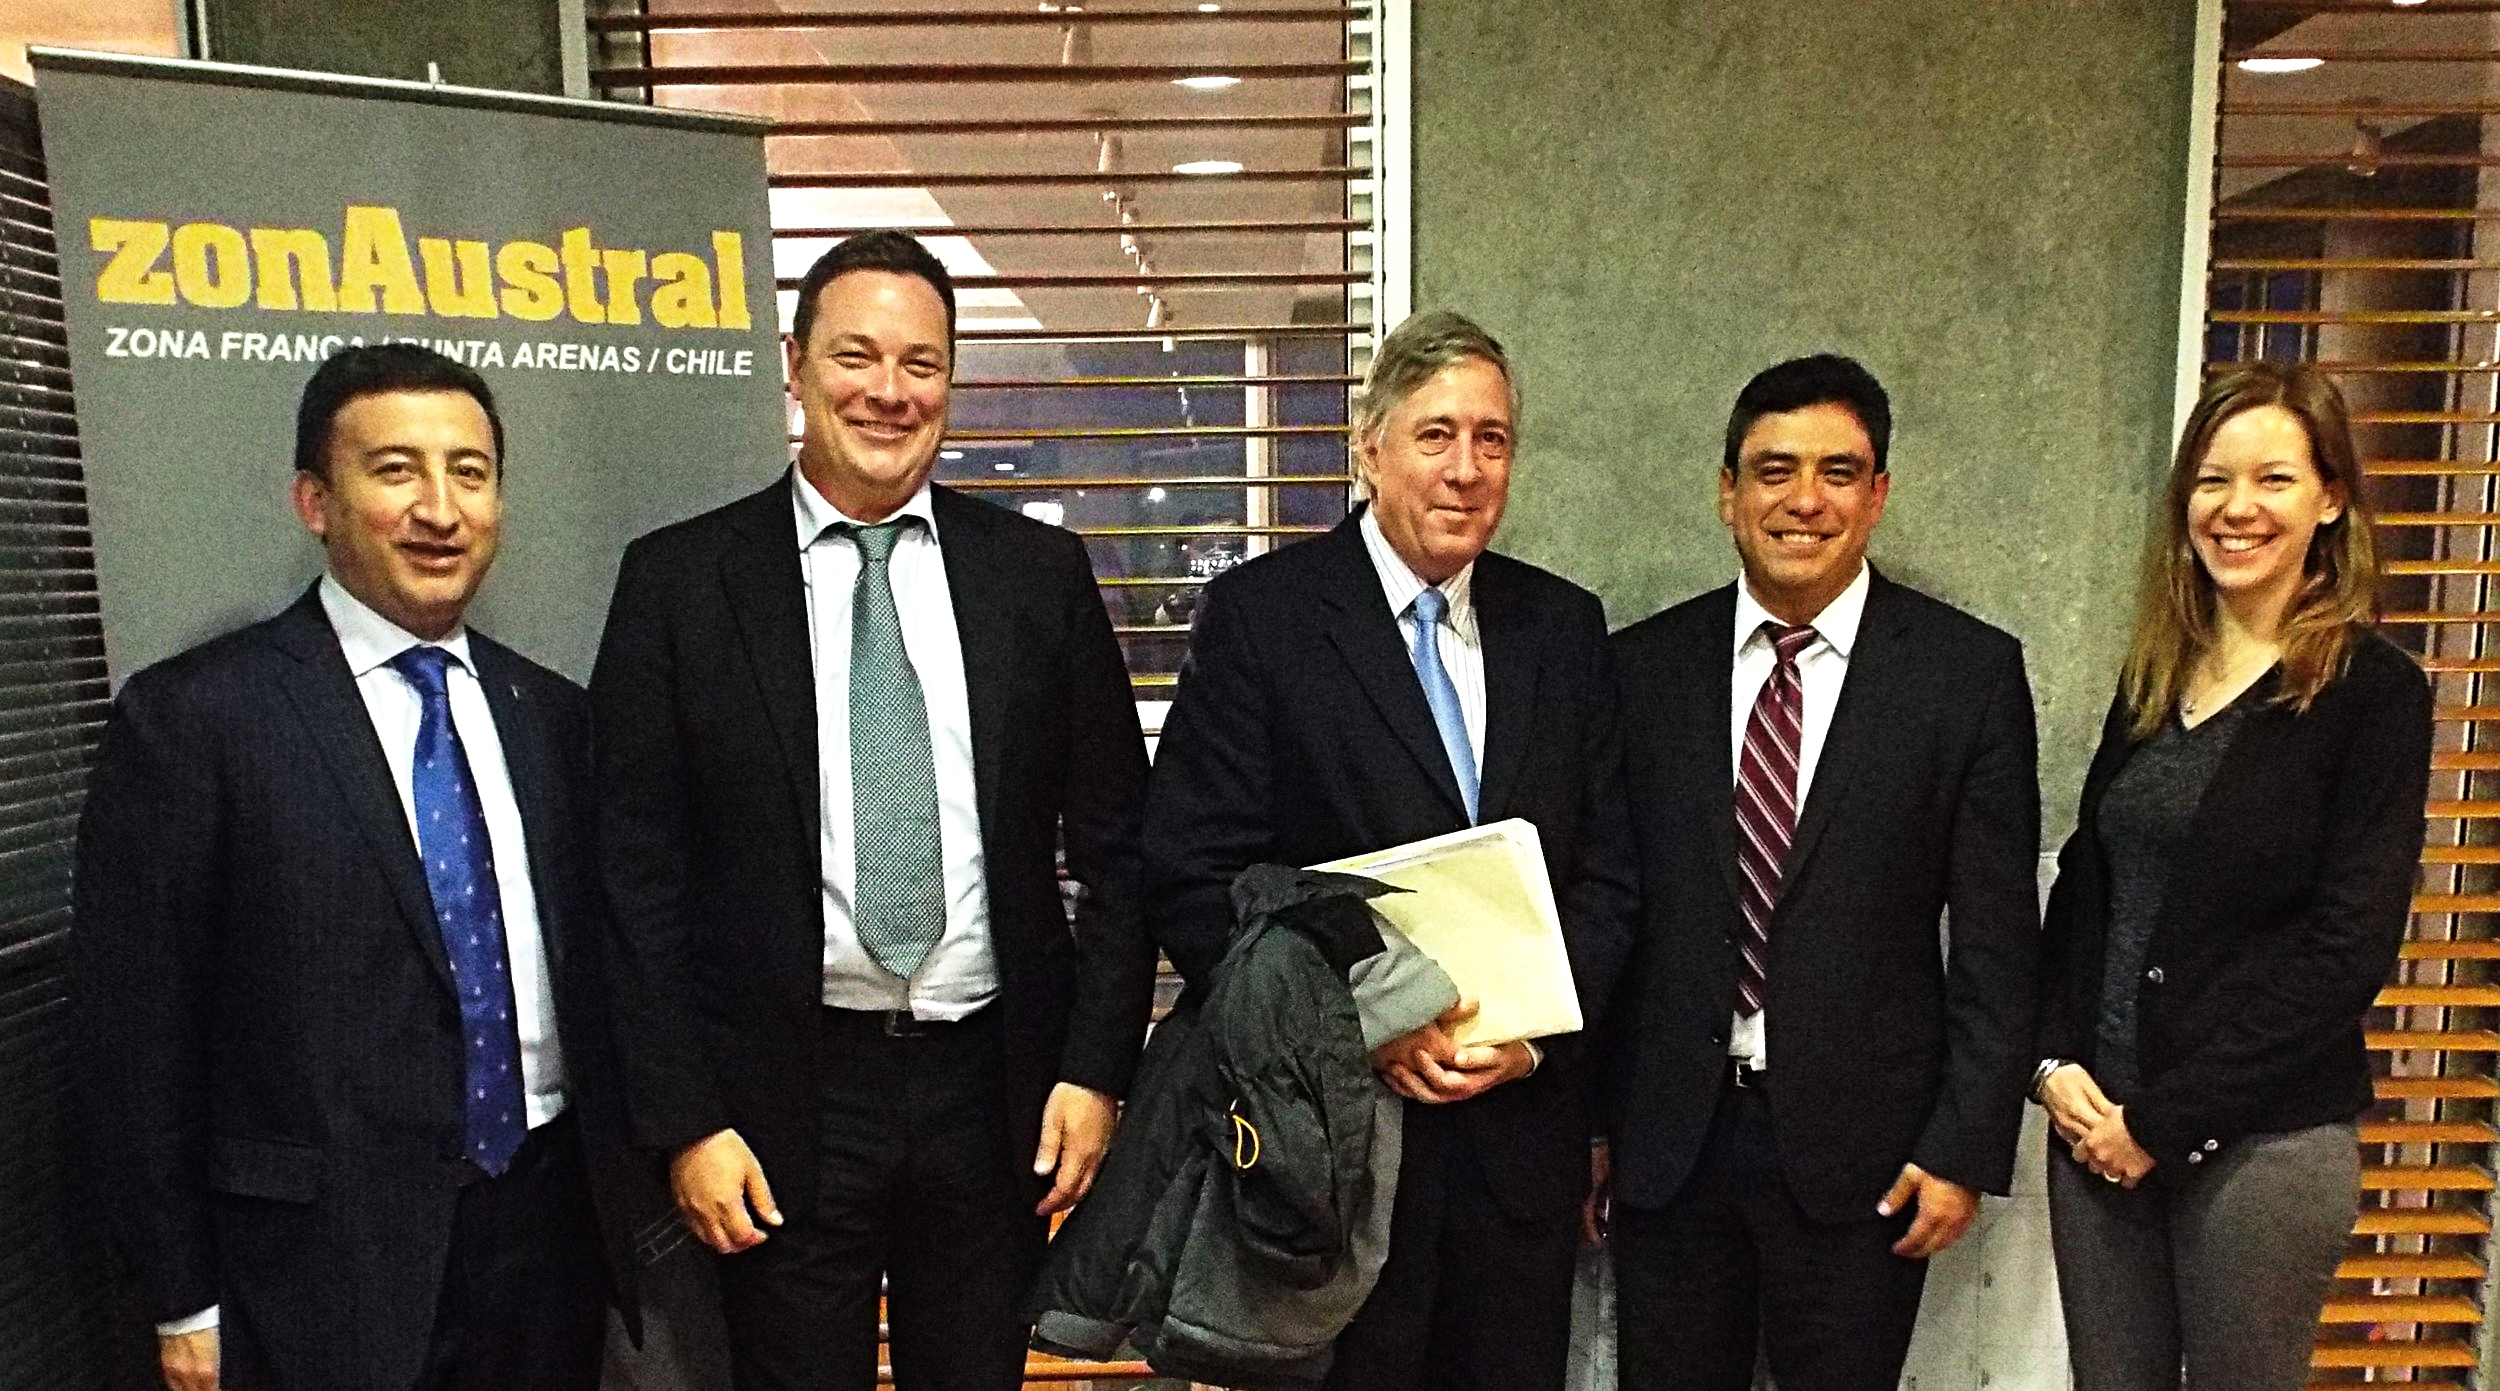 Locus CEO & Founder Jean-Paul Gauthier and team at ZonAustral